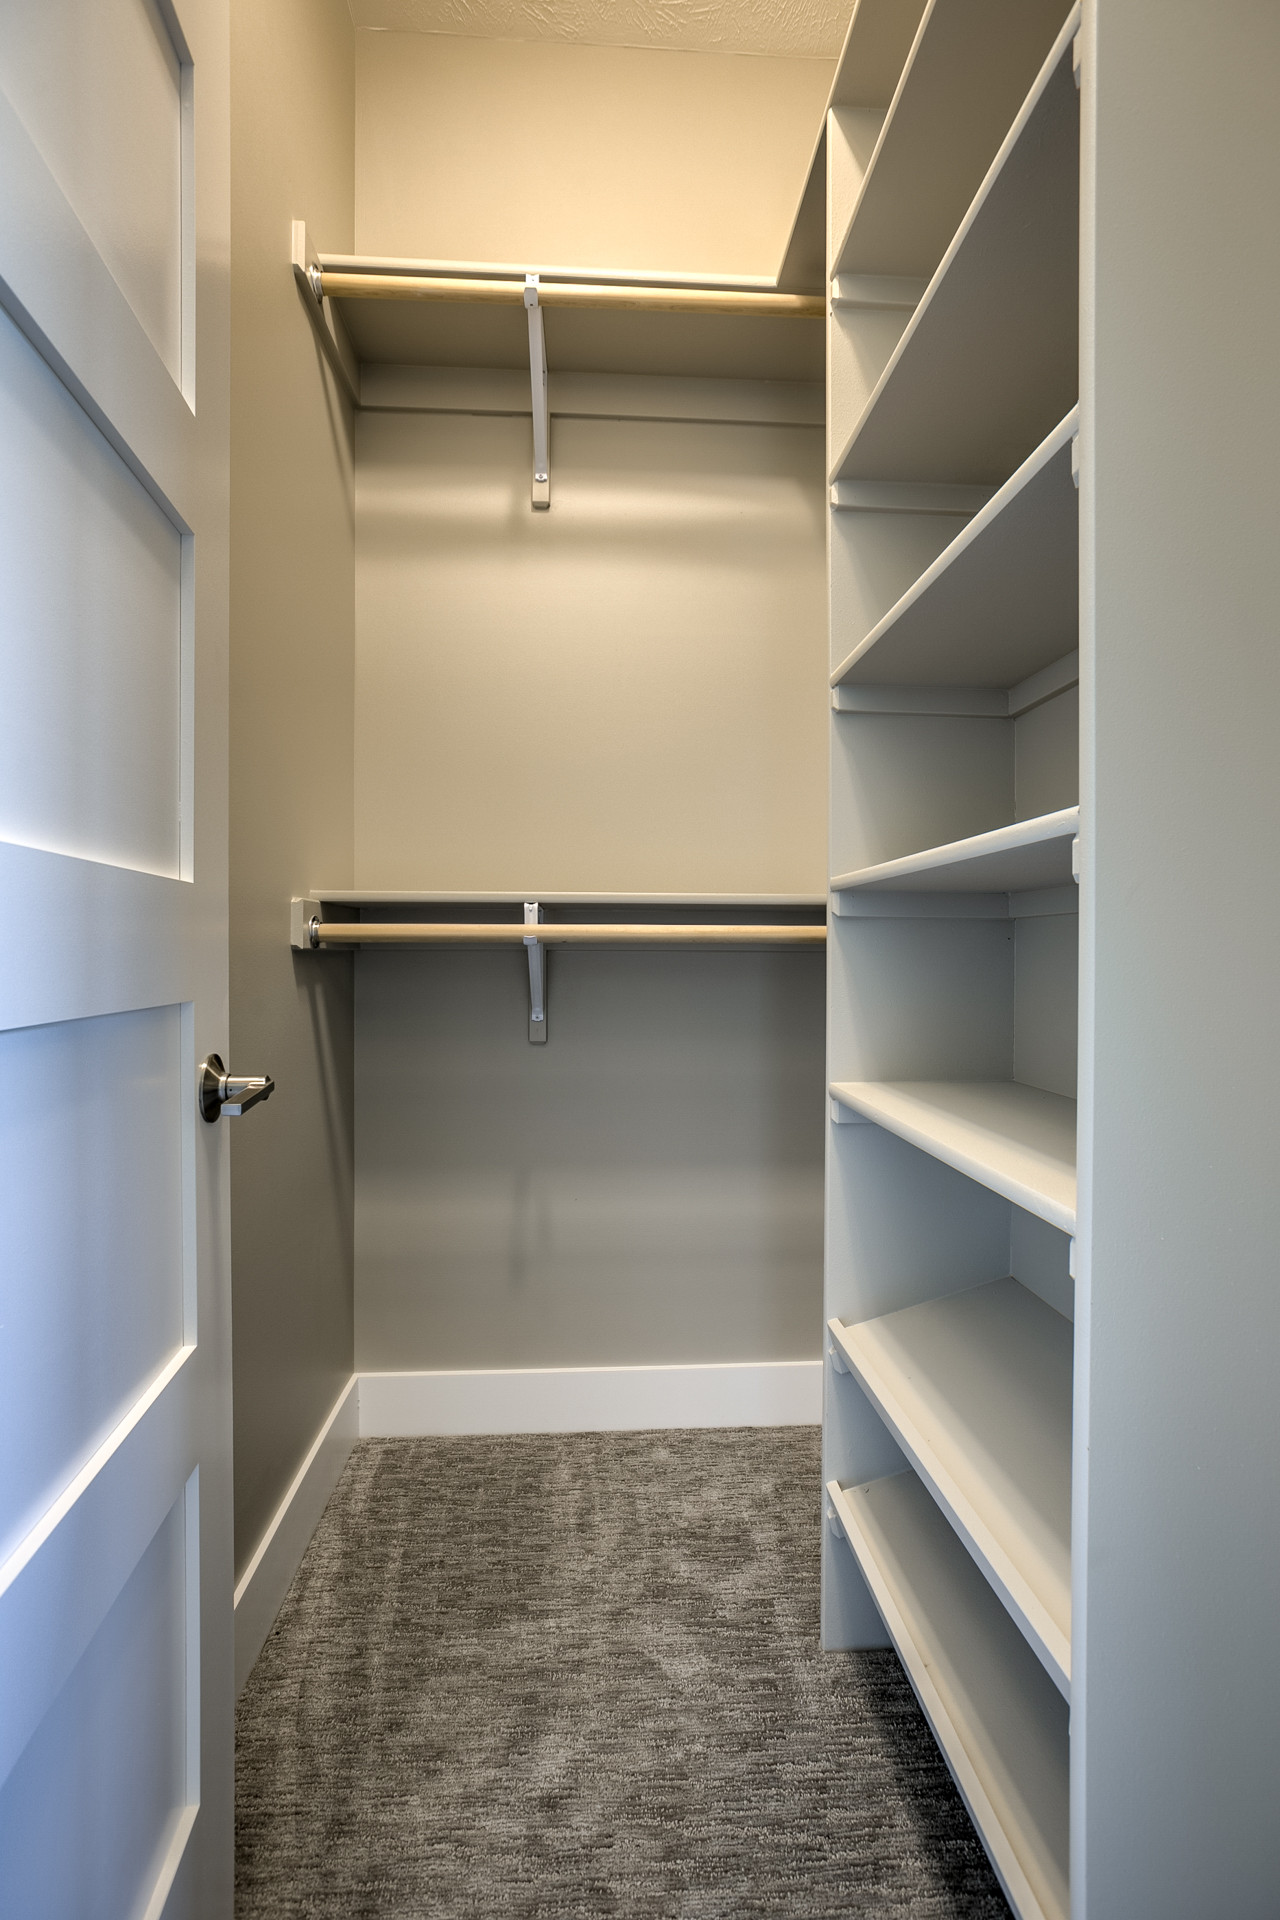 75 Beautiful Small Walk In Closet Pictures Ideas November 2020 Houzz